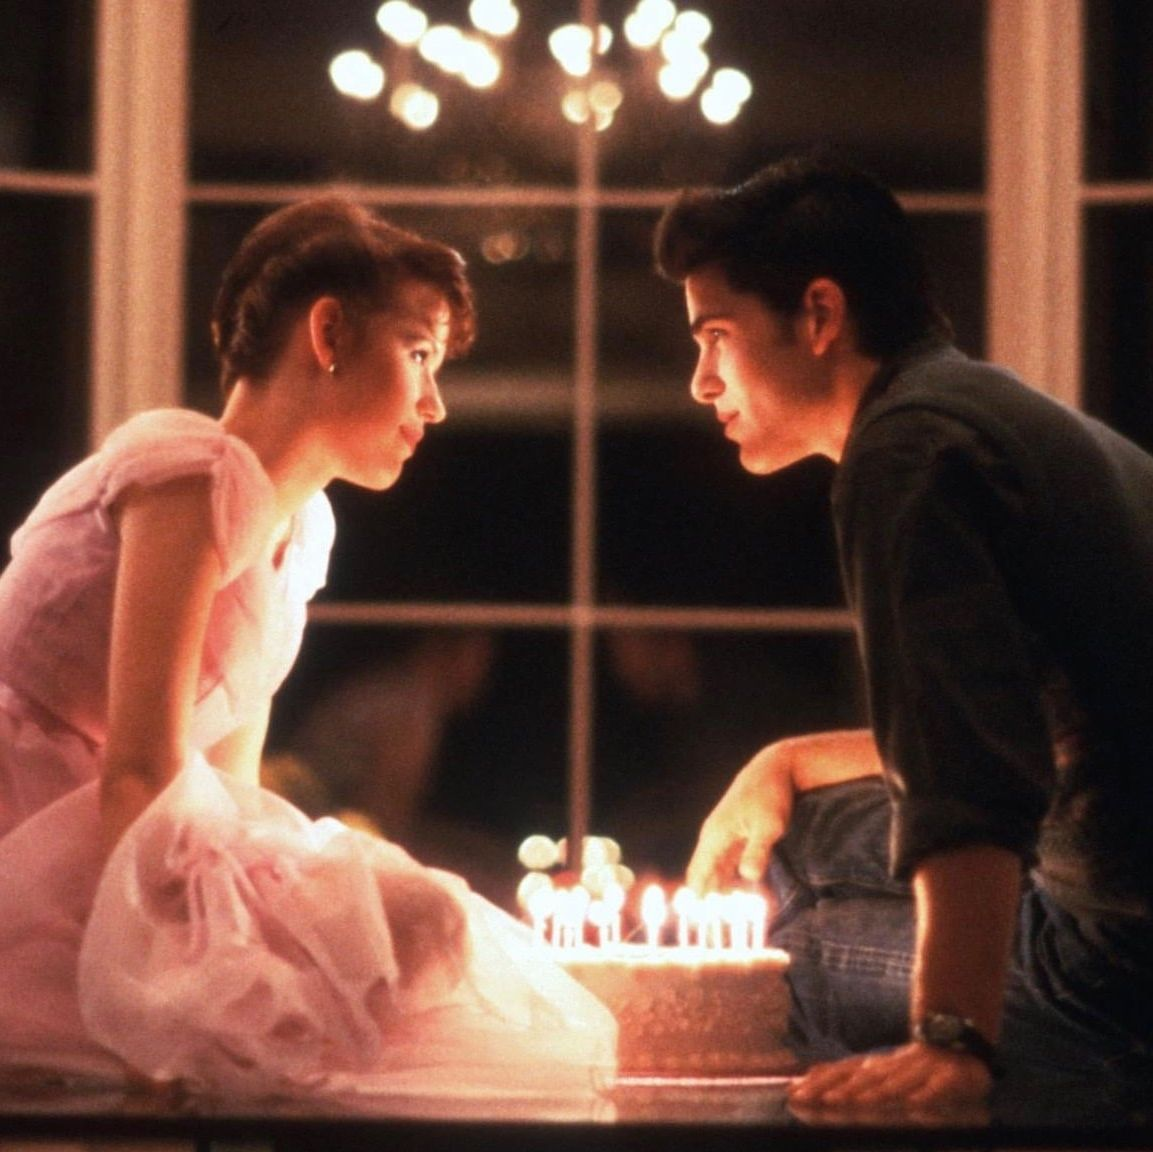 Sixteen Candles Molly Ringwald's first outing as writer-director John Hughes's muse sees her playing the eternally angsty Sam, who pines for the high school hunk, avoids a lovelorn geek, and resents her family for forgetting her 16th birthday.